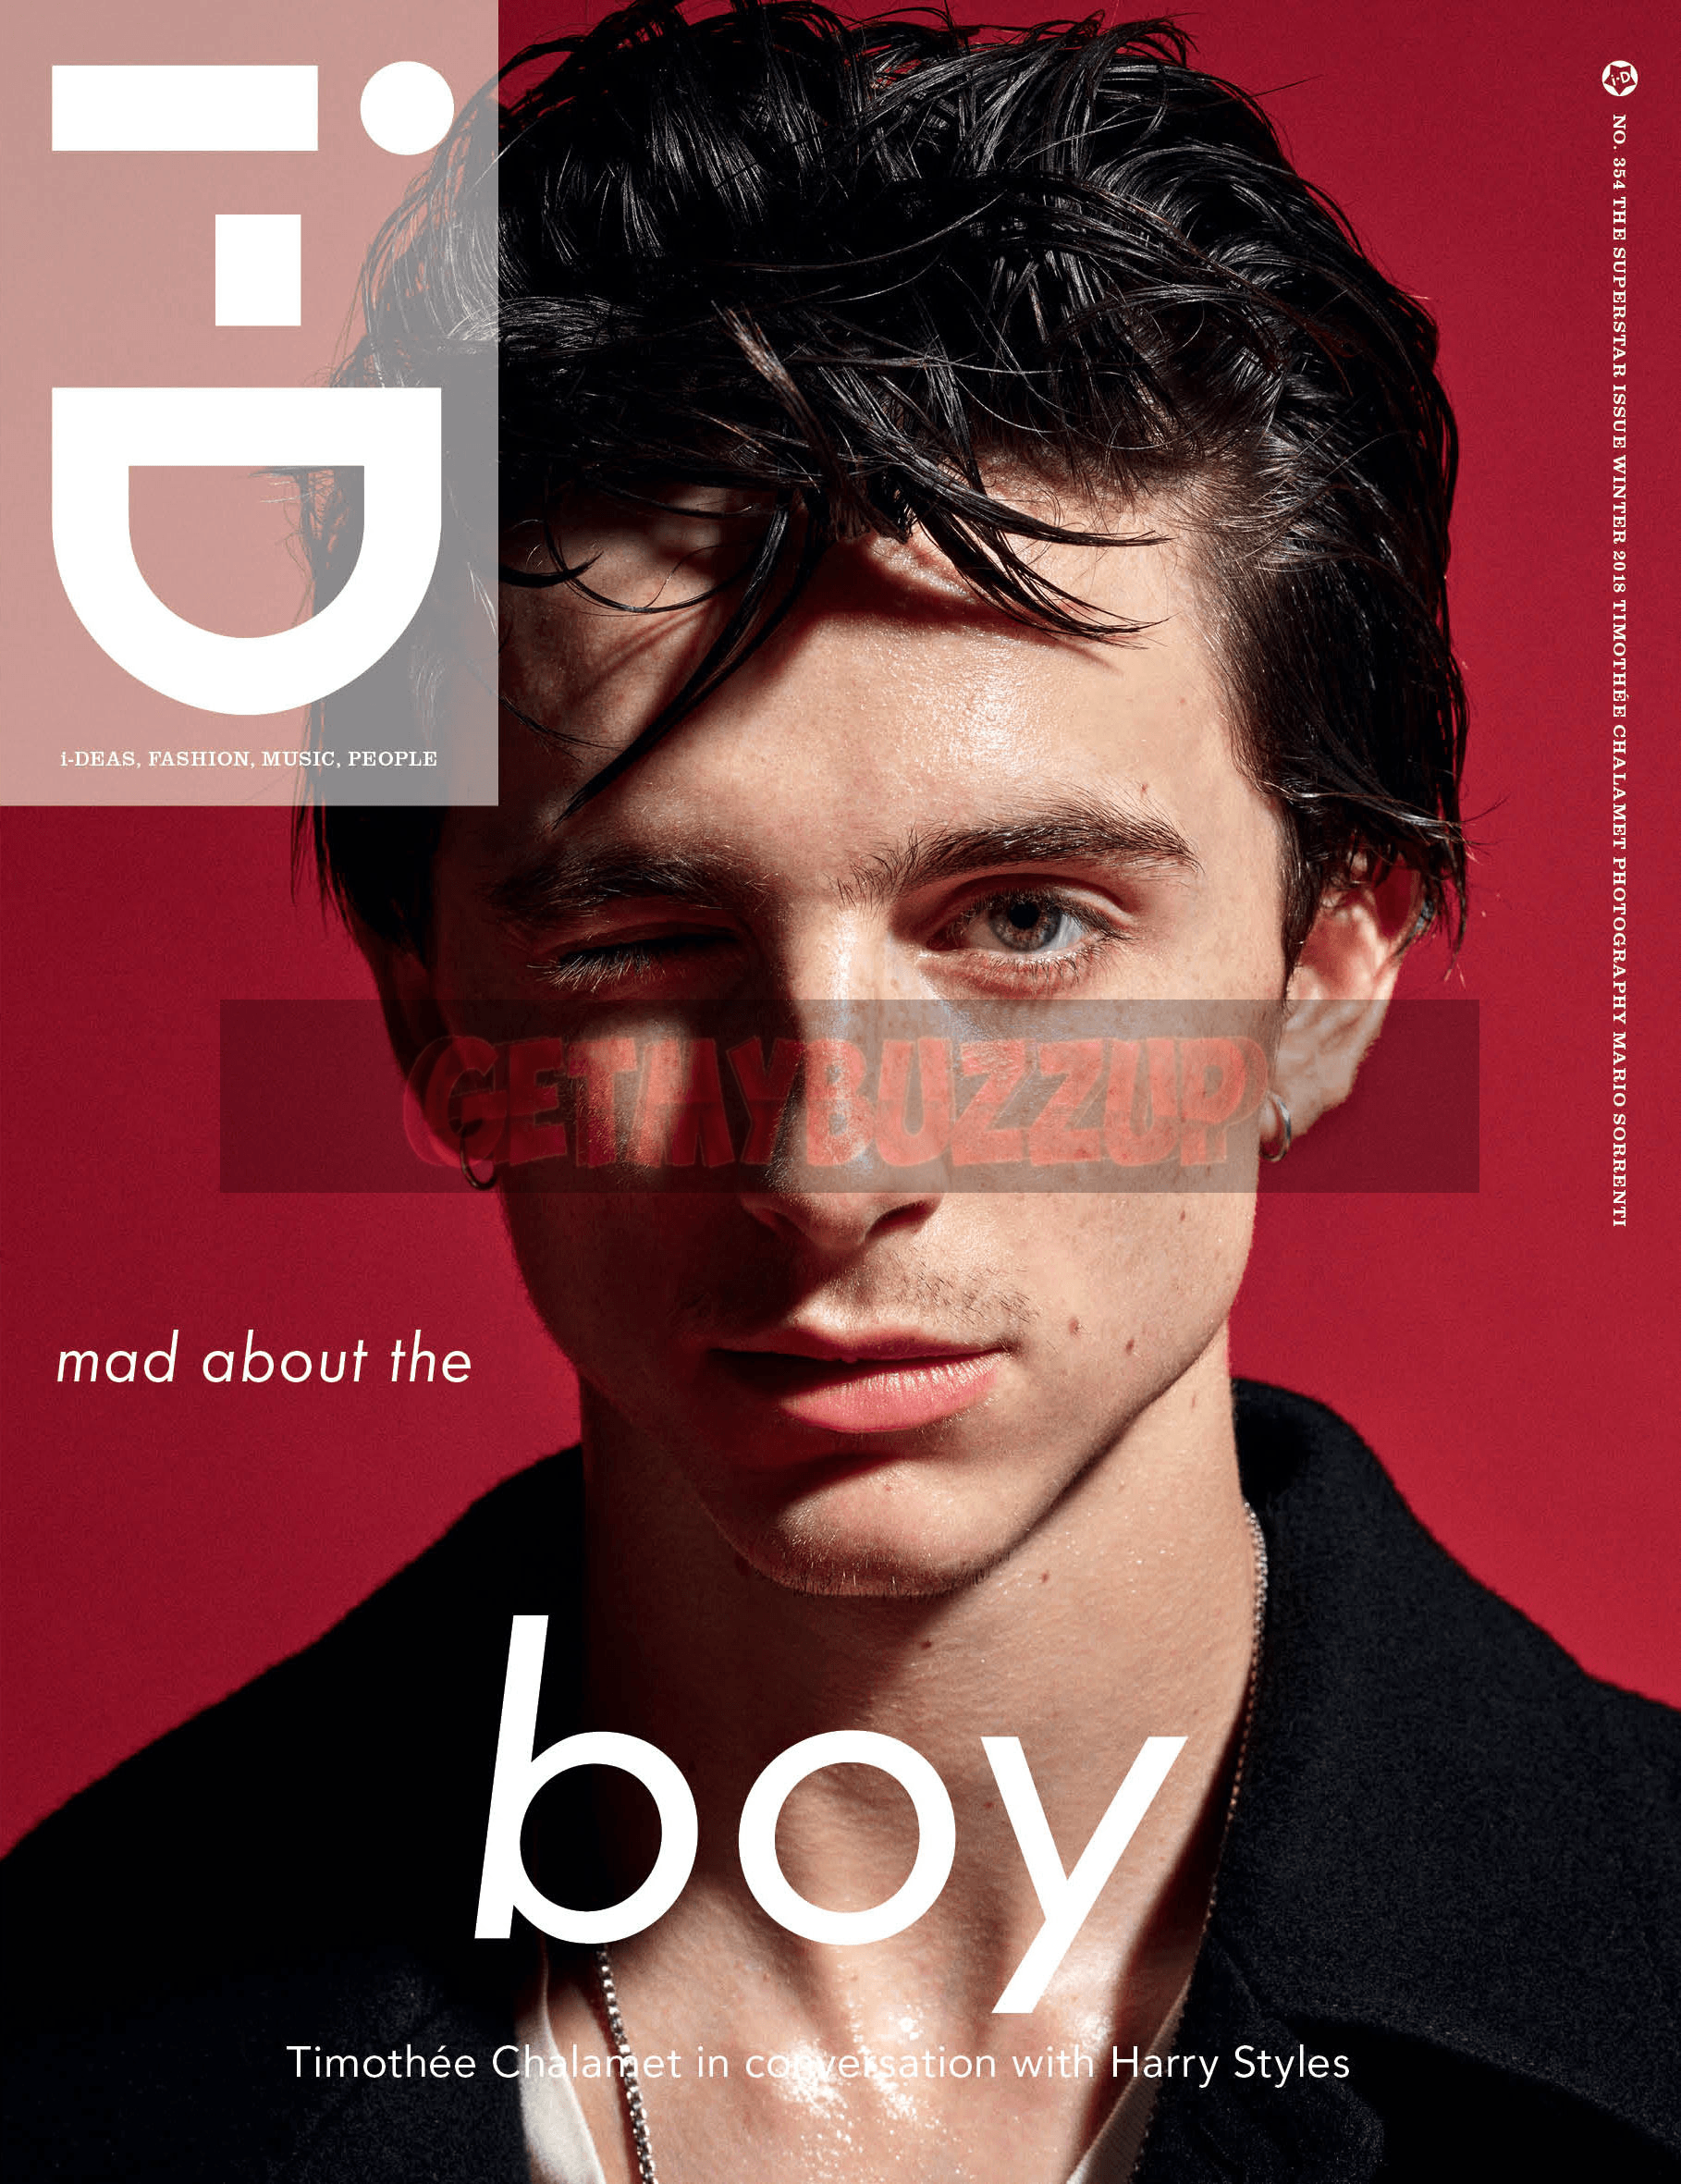 i-D Reveals Timothée Chalamet In Conversation With Harry Styles | Winter 2018 Issue [Magazine Cover]